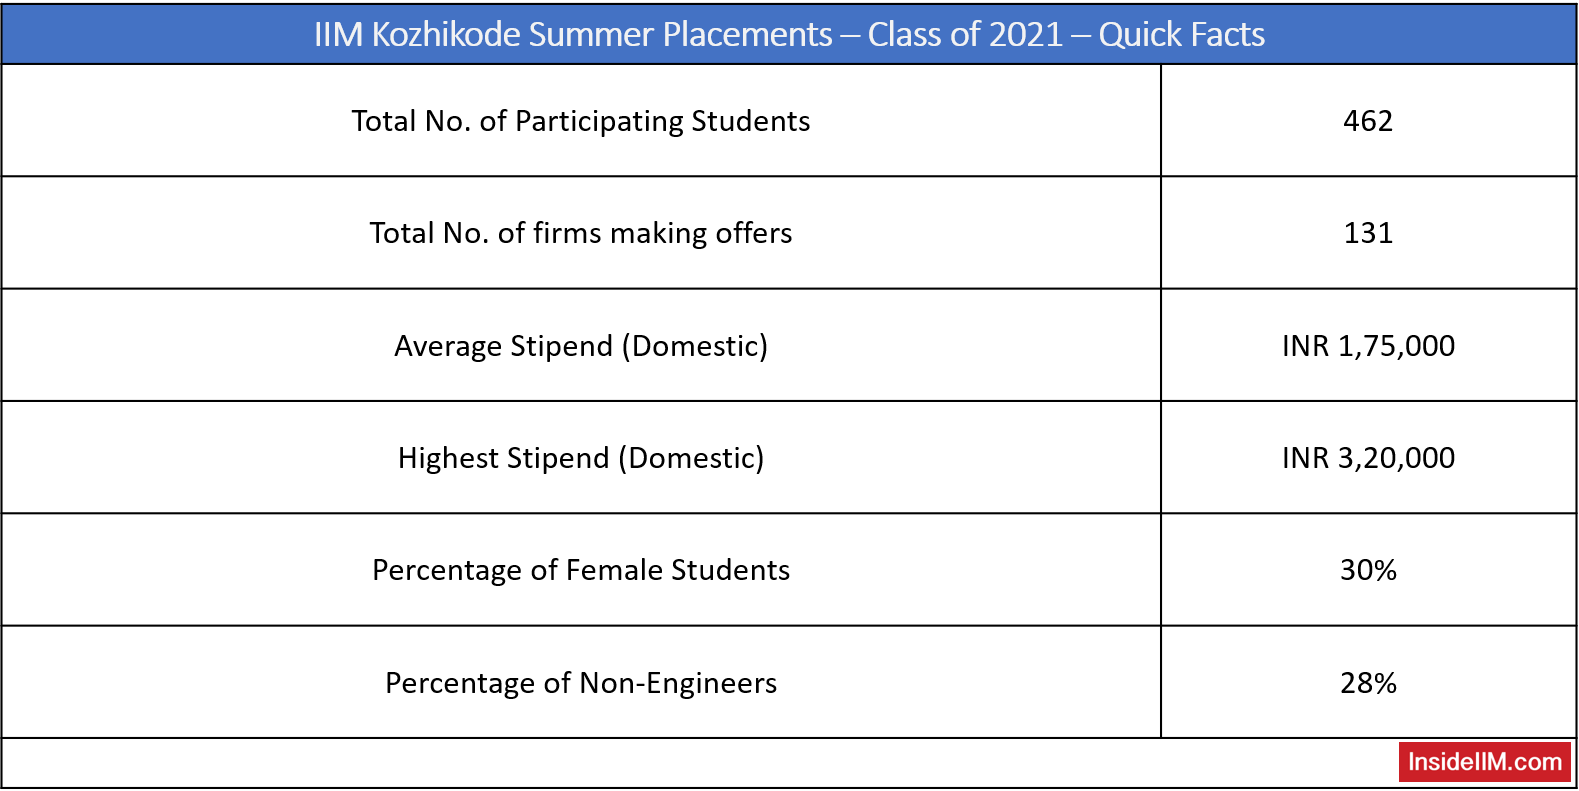 IIM Kozhikode Summer Placements PGP Class of 2021 - Salary, Offers, Quick Facts